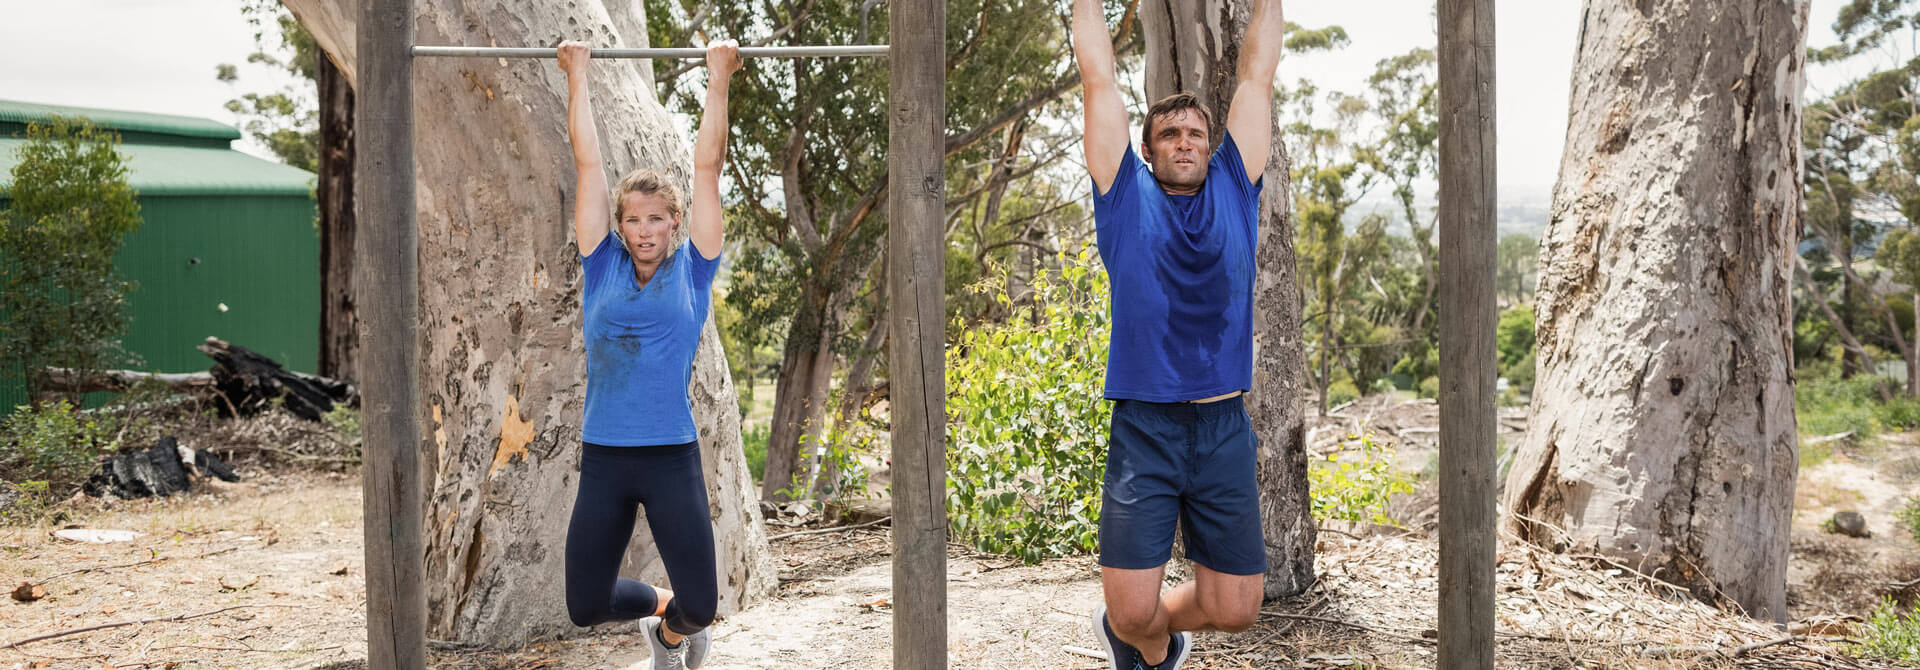 Couple hangs for their health on the pull-up bar.